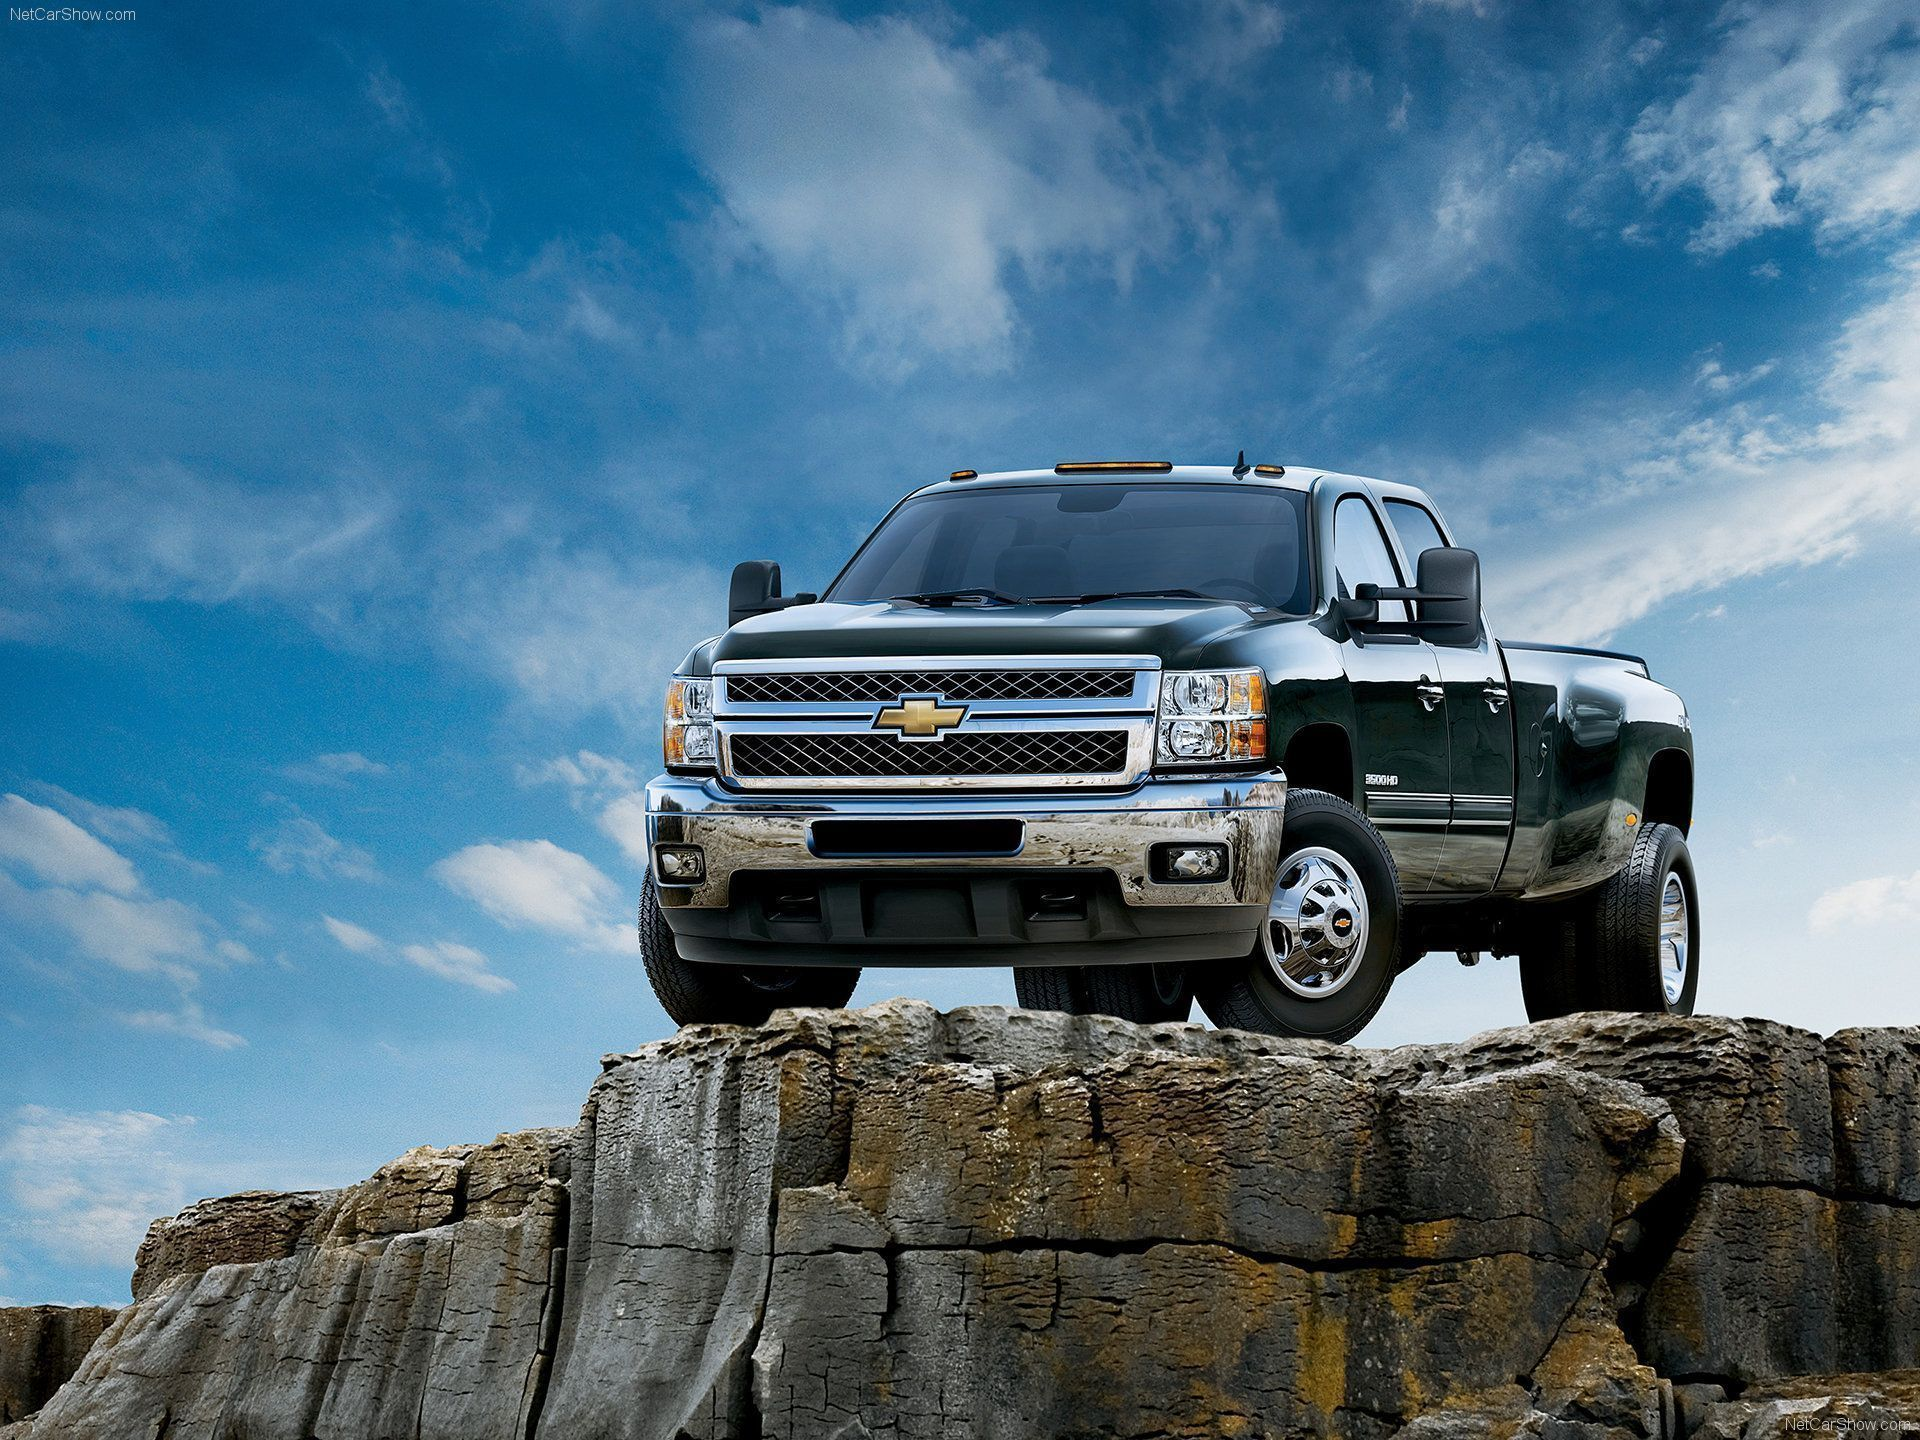 Chevrolet Truck Wallpaper 1080p JiS (With images